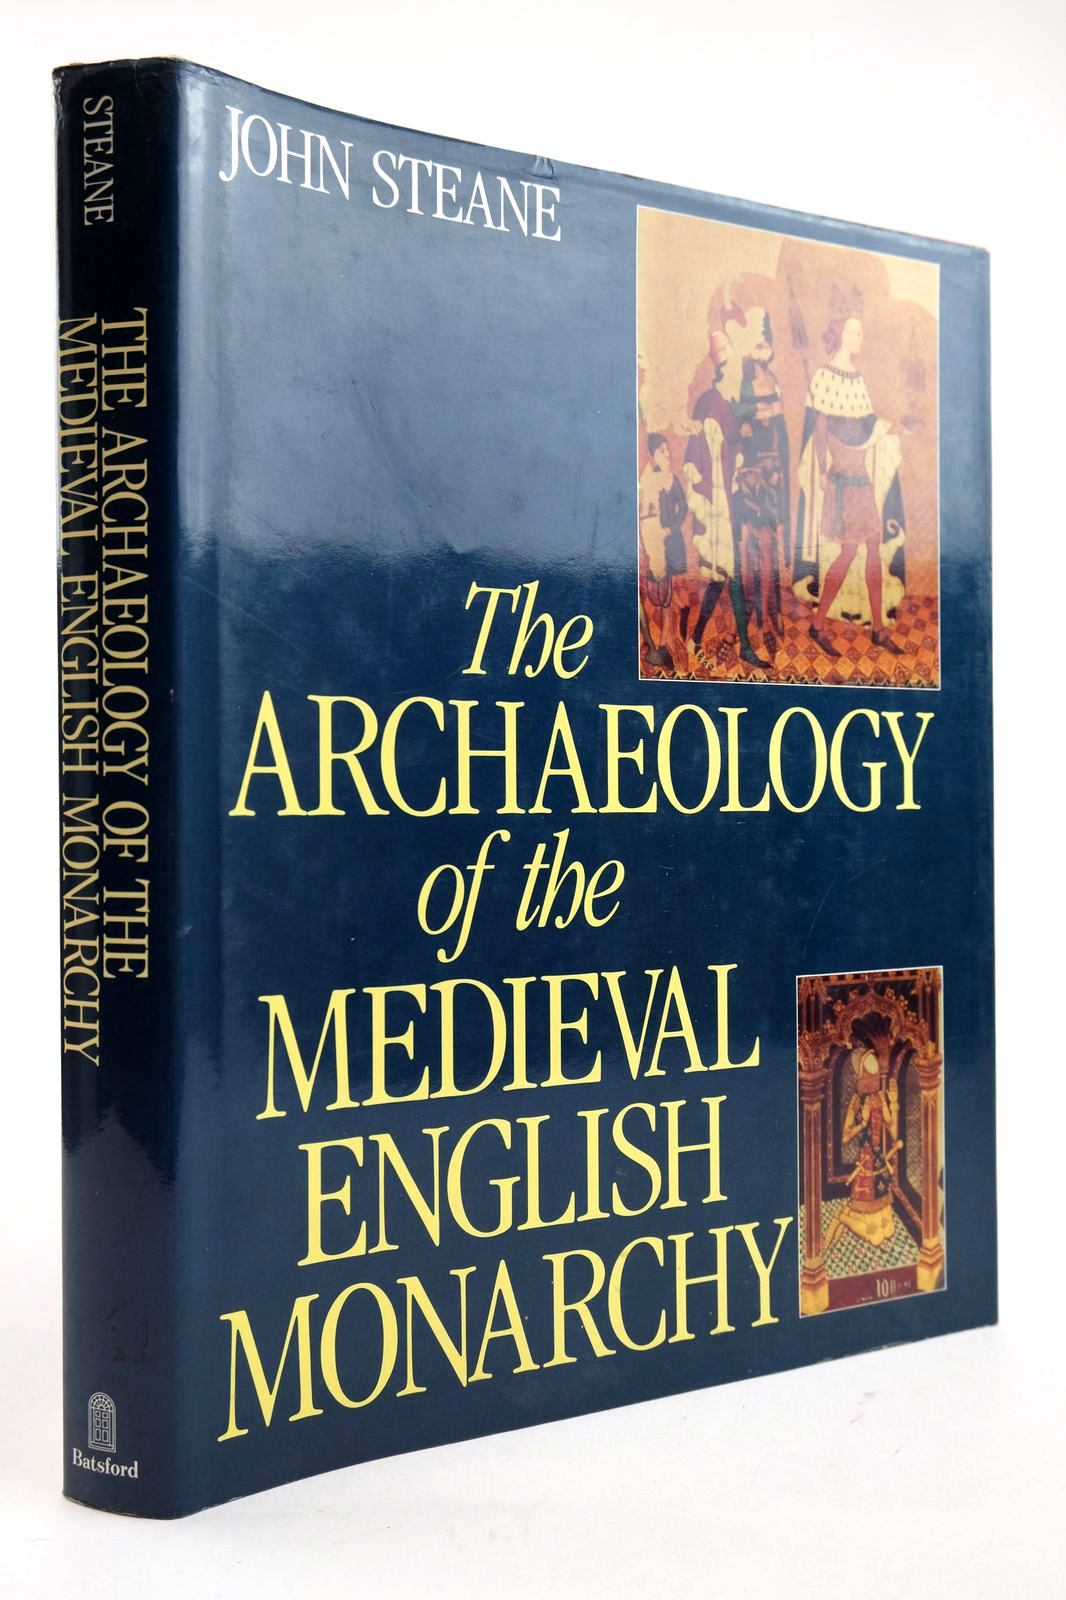 Photo of THE ARCHAEOLOGY OF THE MEDIEVAL ENGLISH MONARCHY written by Steane, John published by B.T. Batsford Ltd. (STOCK CODE: 2132592)  for sale by Stella & Rose's Books